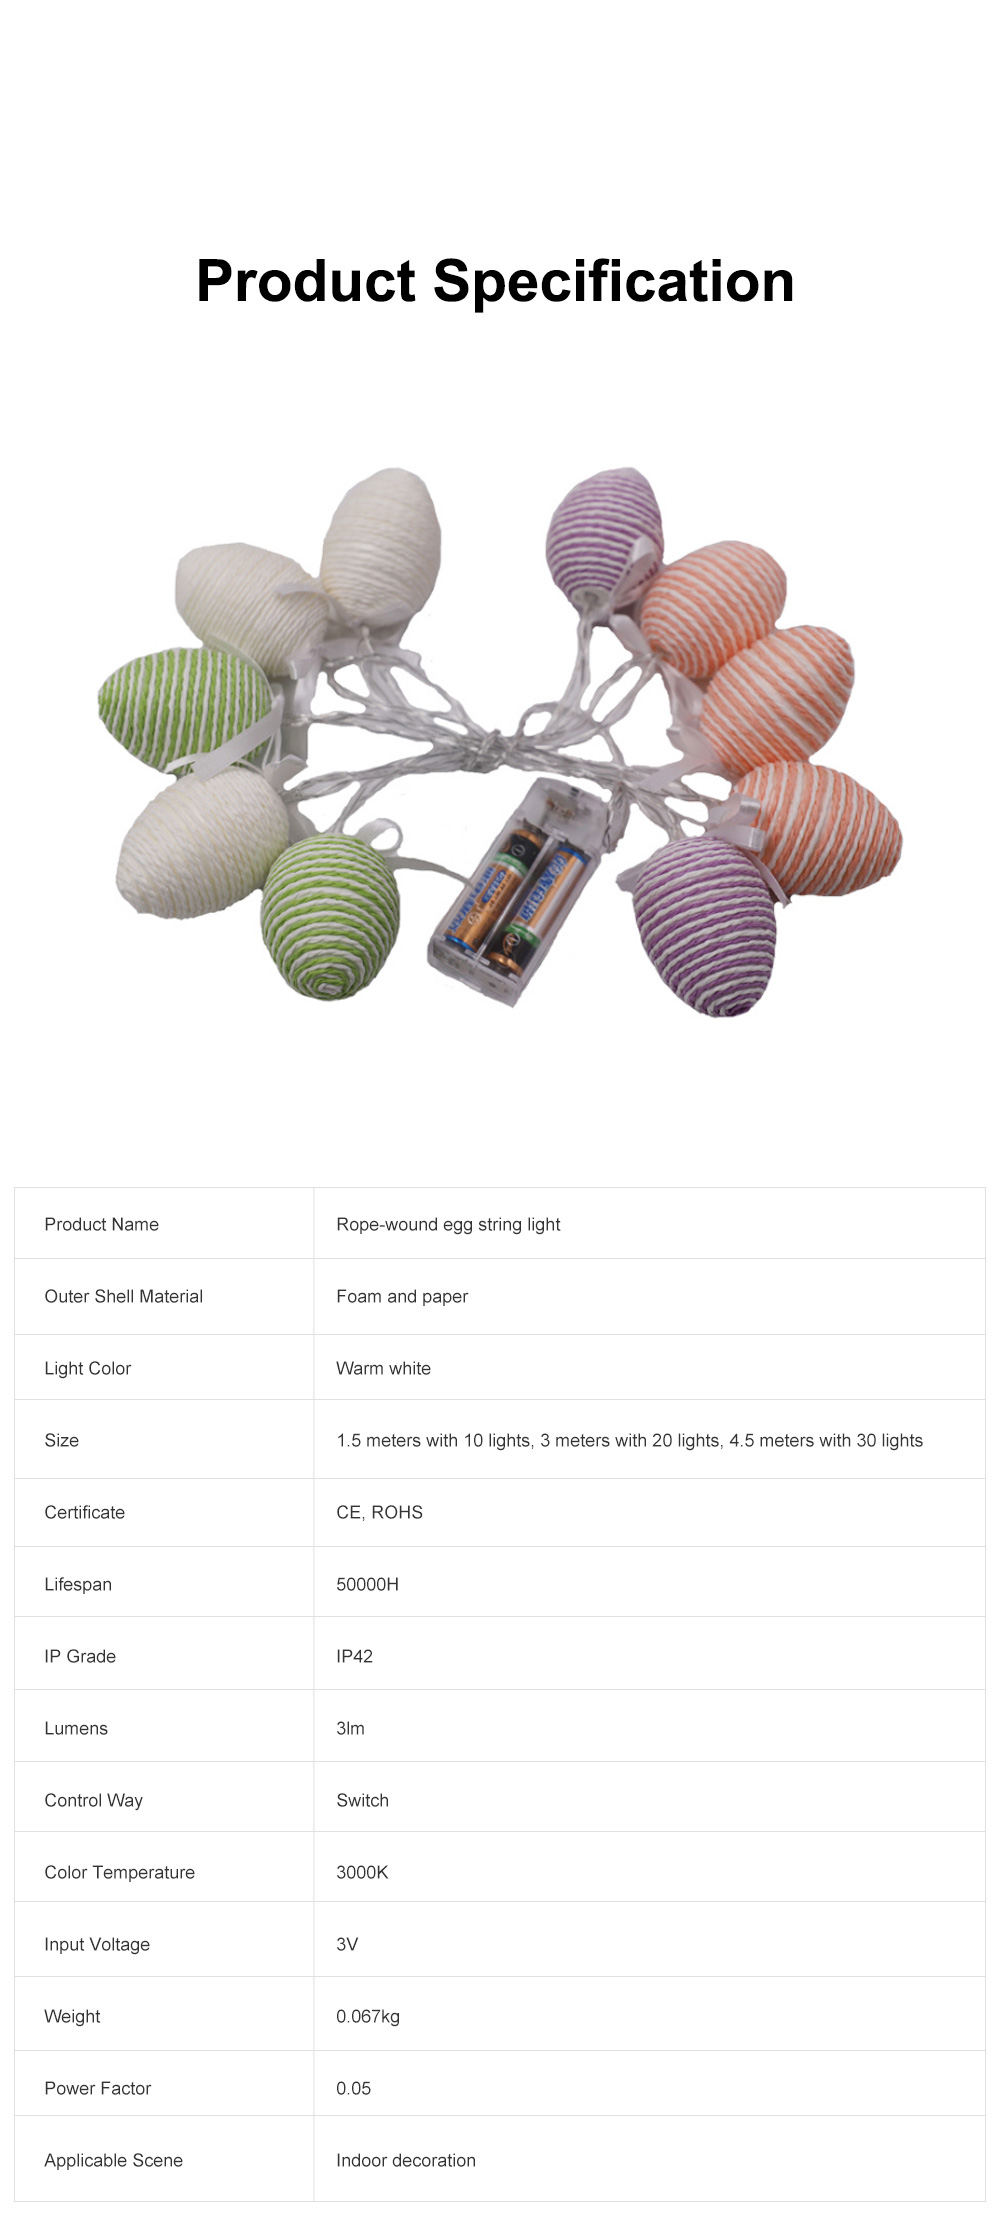 10 20 30 LEDs Creative Warm Rope-wound Colored Egg String Light for Easter Decoration Battery-powered LED Lamp String 1.5m 3m 4.5m Warm White 6